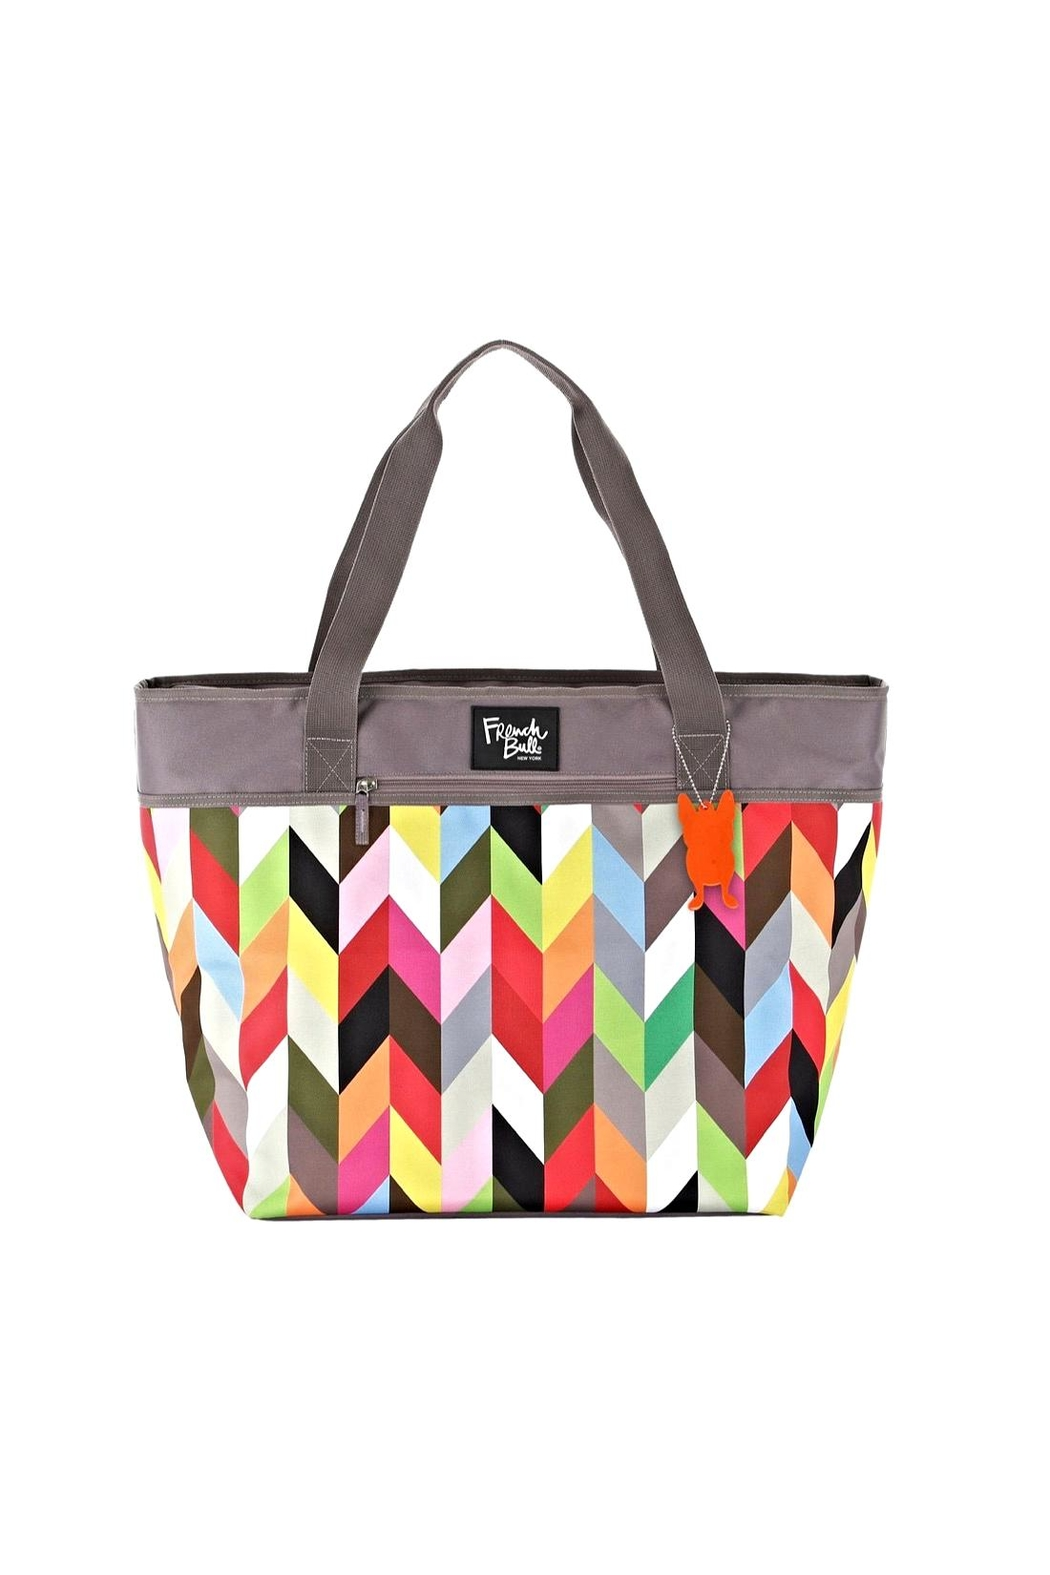 French Bull Insulated Picnic Tote - Main Image